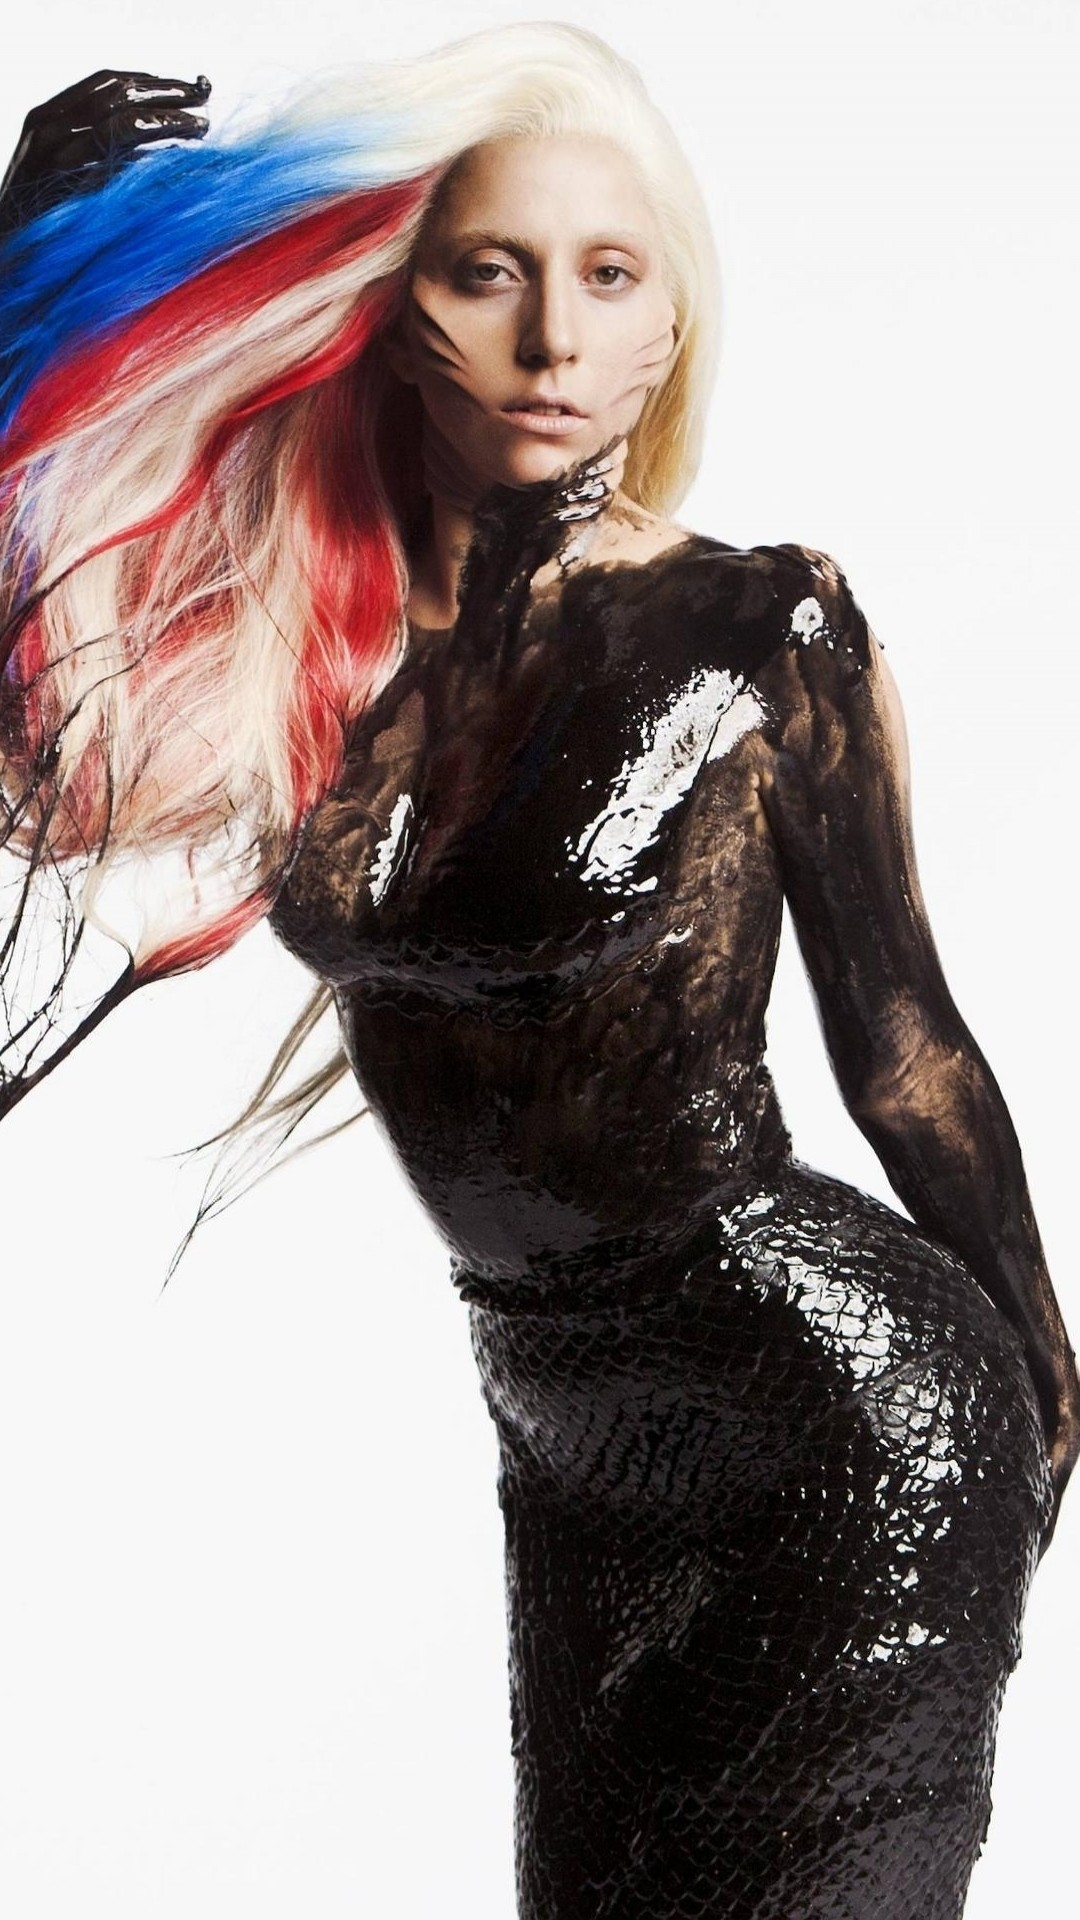 gaga lady wallpapers mobile music background wallpapertag